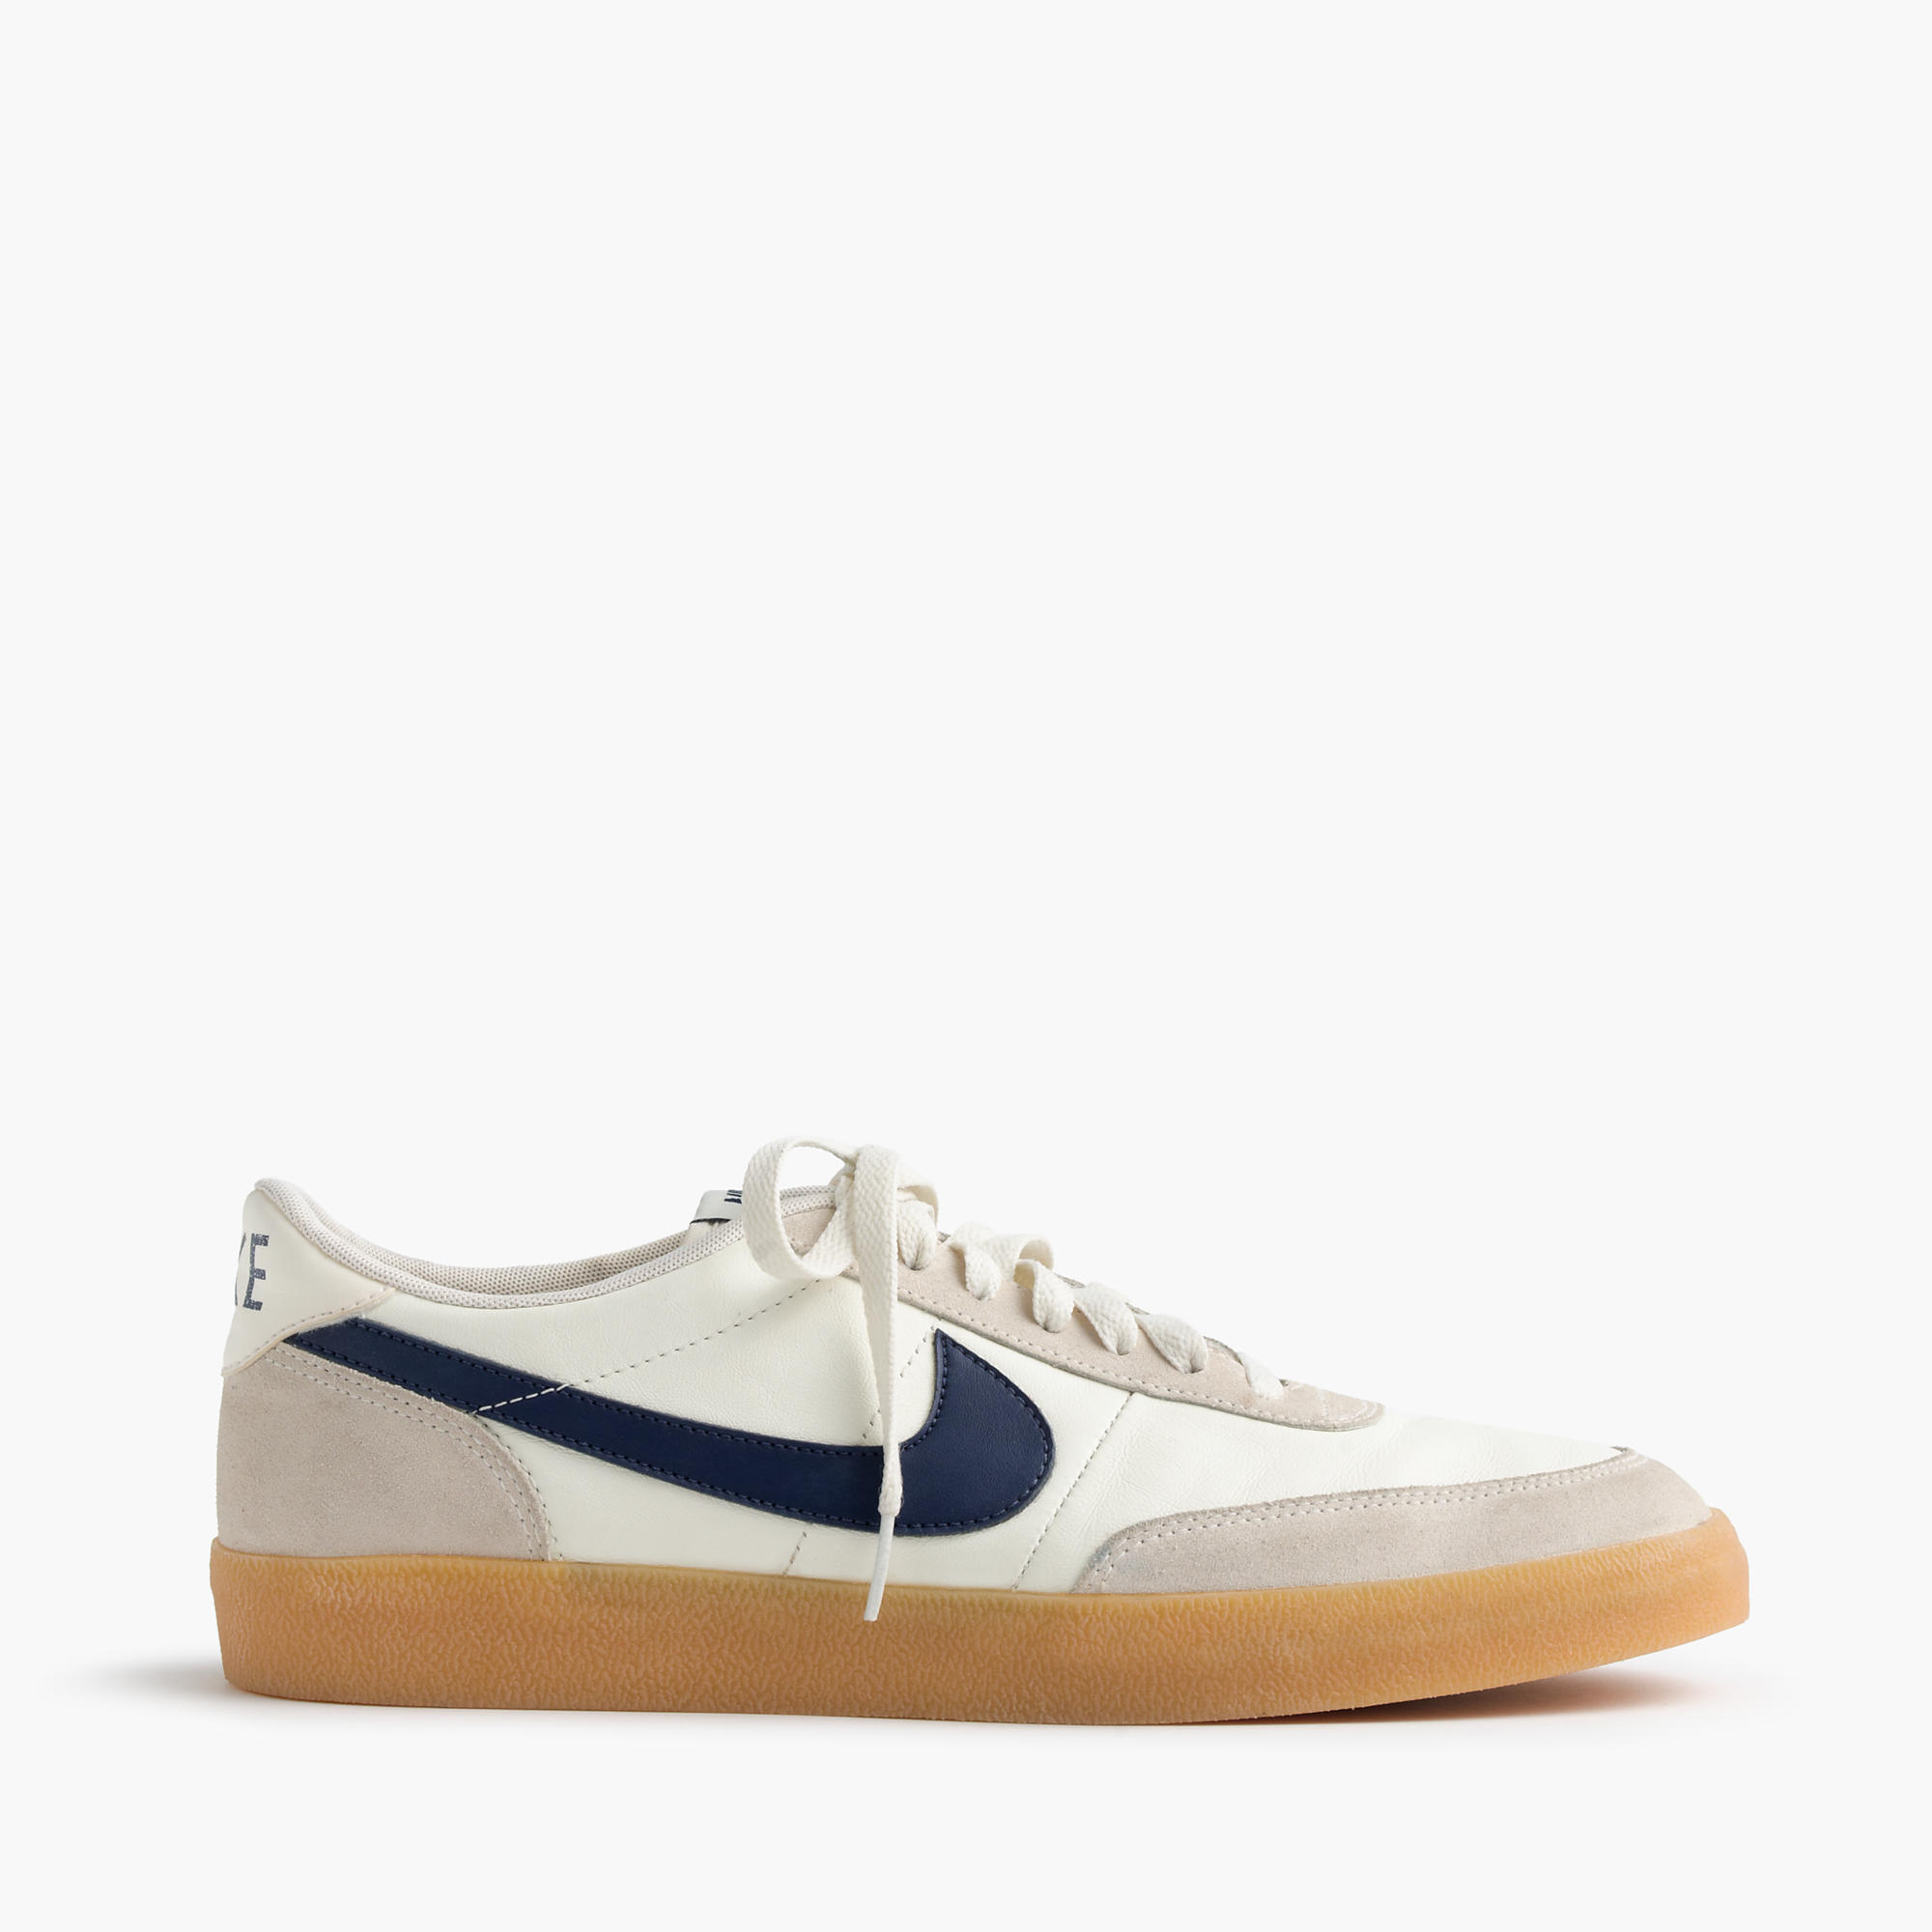 【预定】NIKE FOR J.CREW KILLSHOT 2 SNEAKERS 鞋